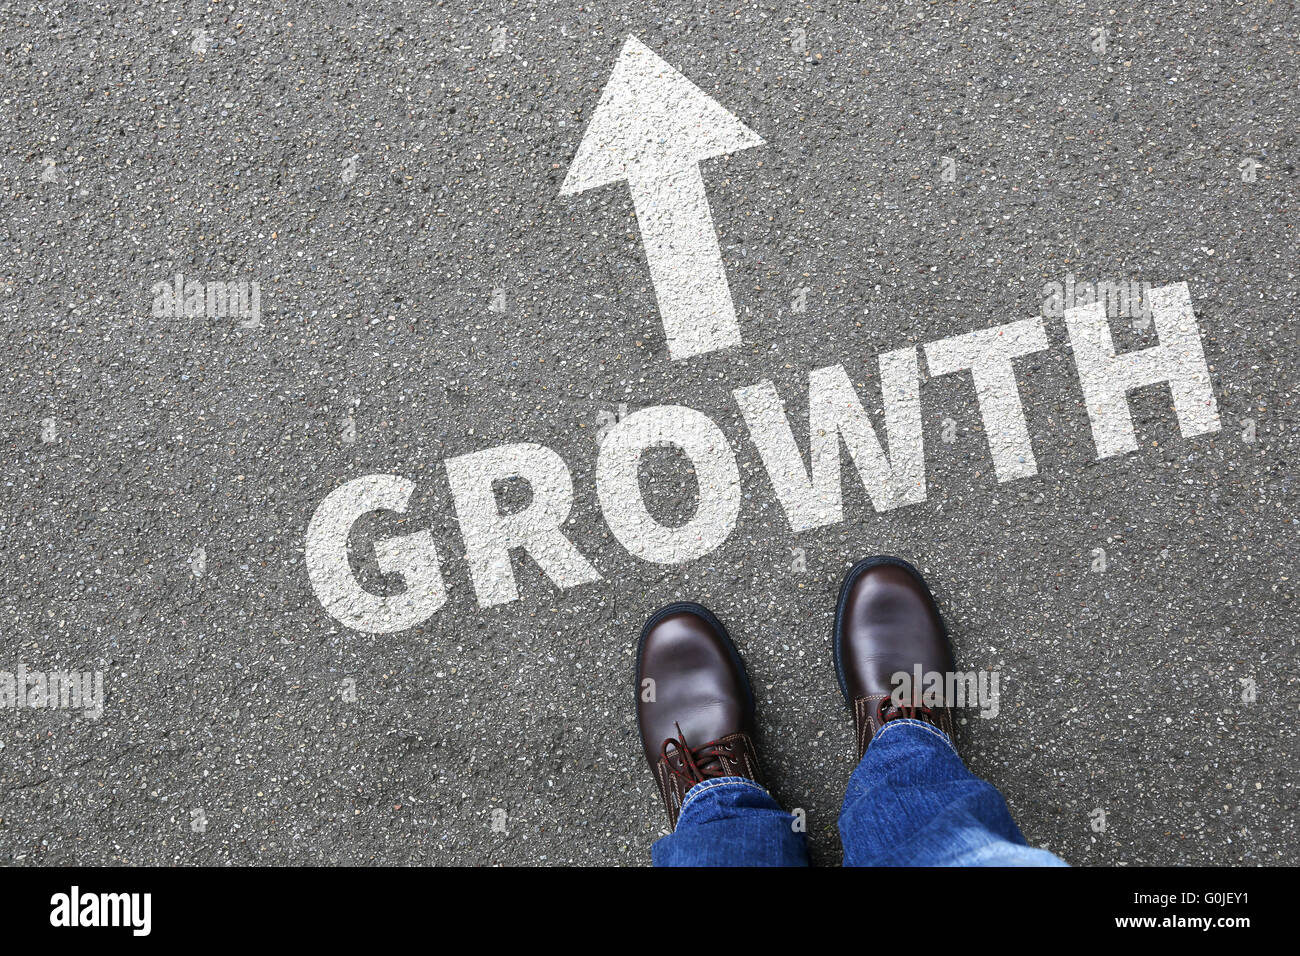 Businessman business man concept with growth growing success successful finances - Stock Image